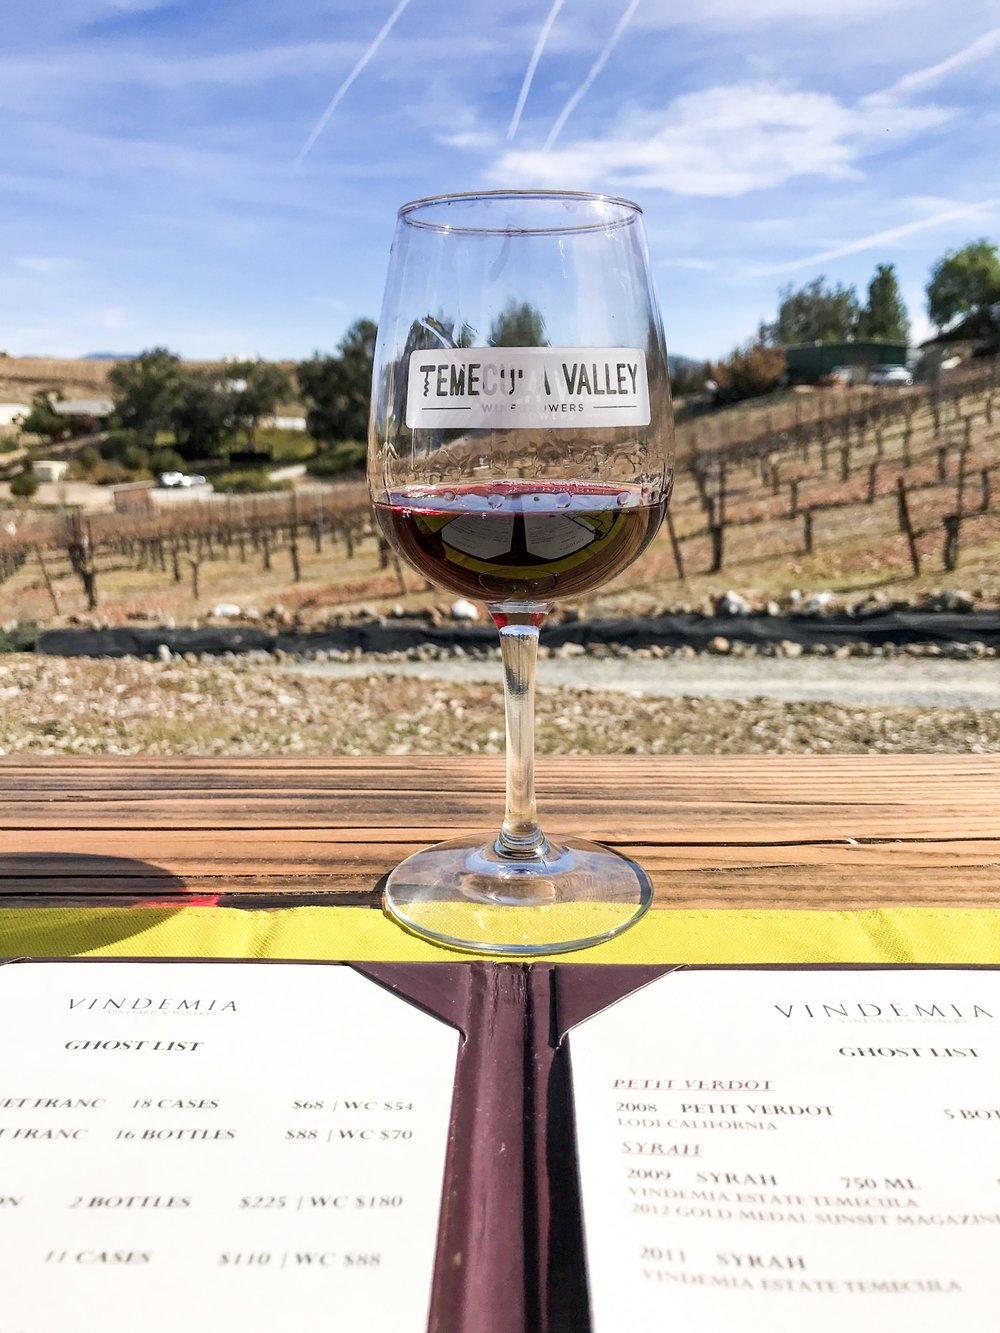 Photo by Erika Beach | Temecula Wine Country | Vindemia Winery